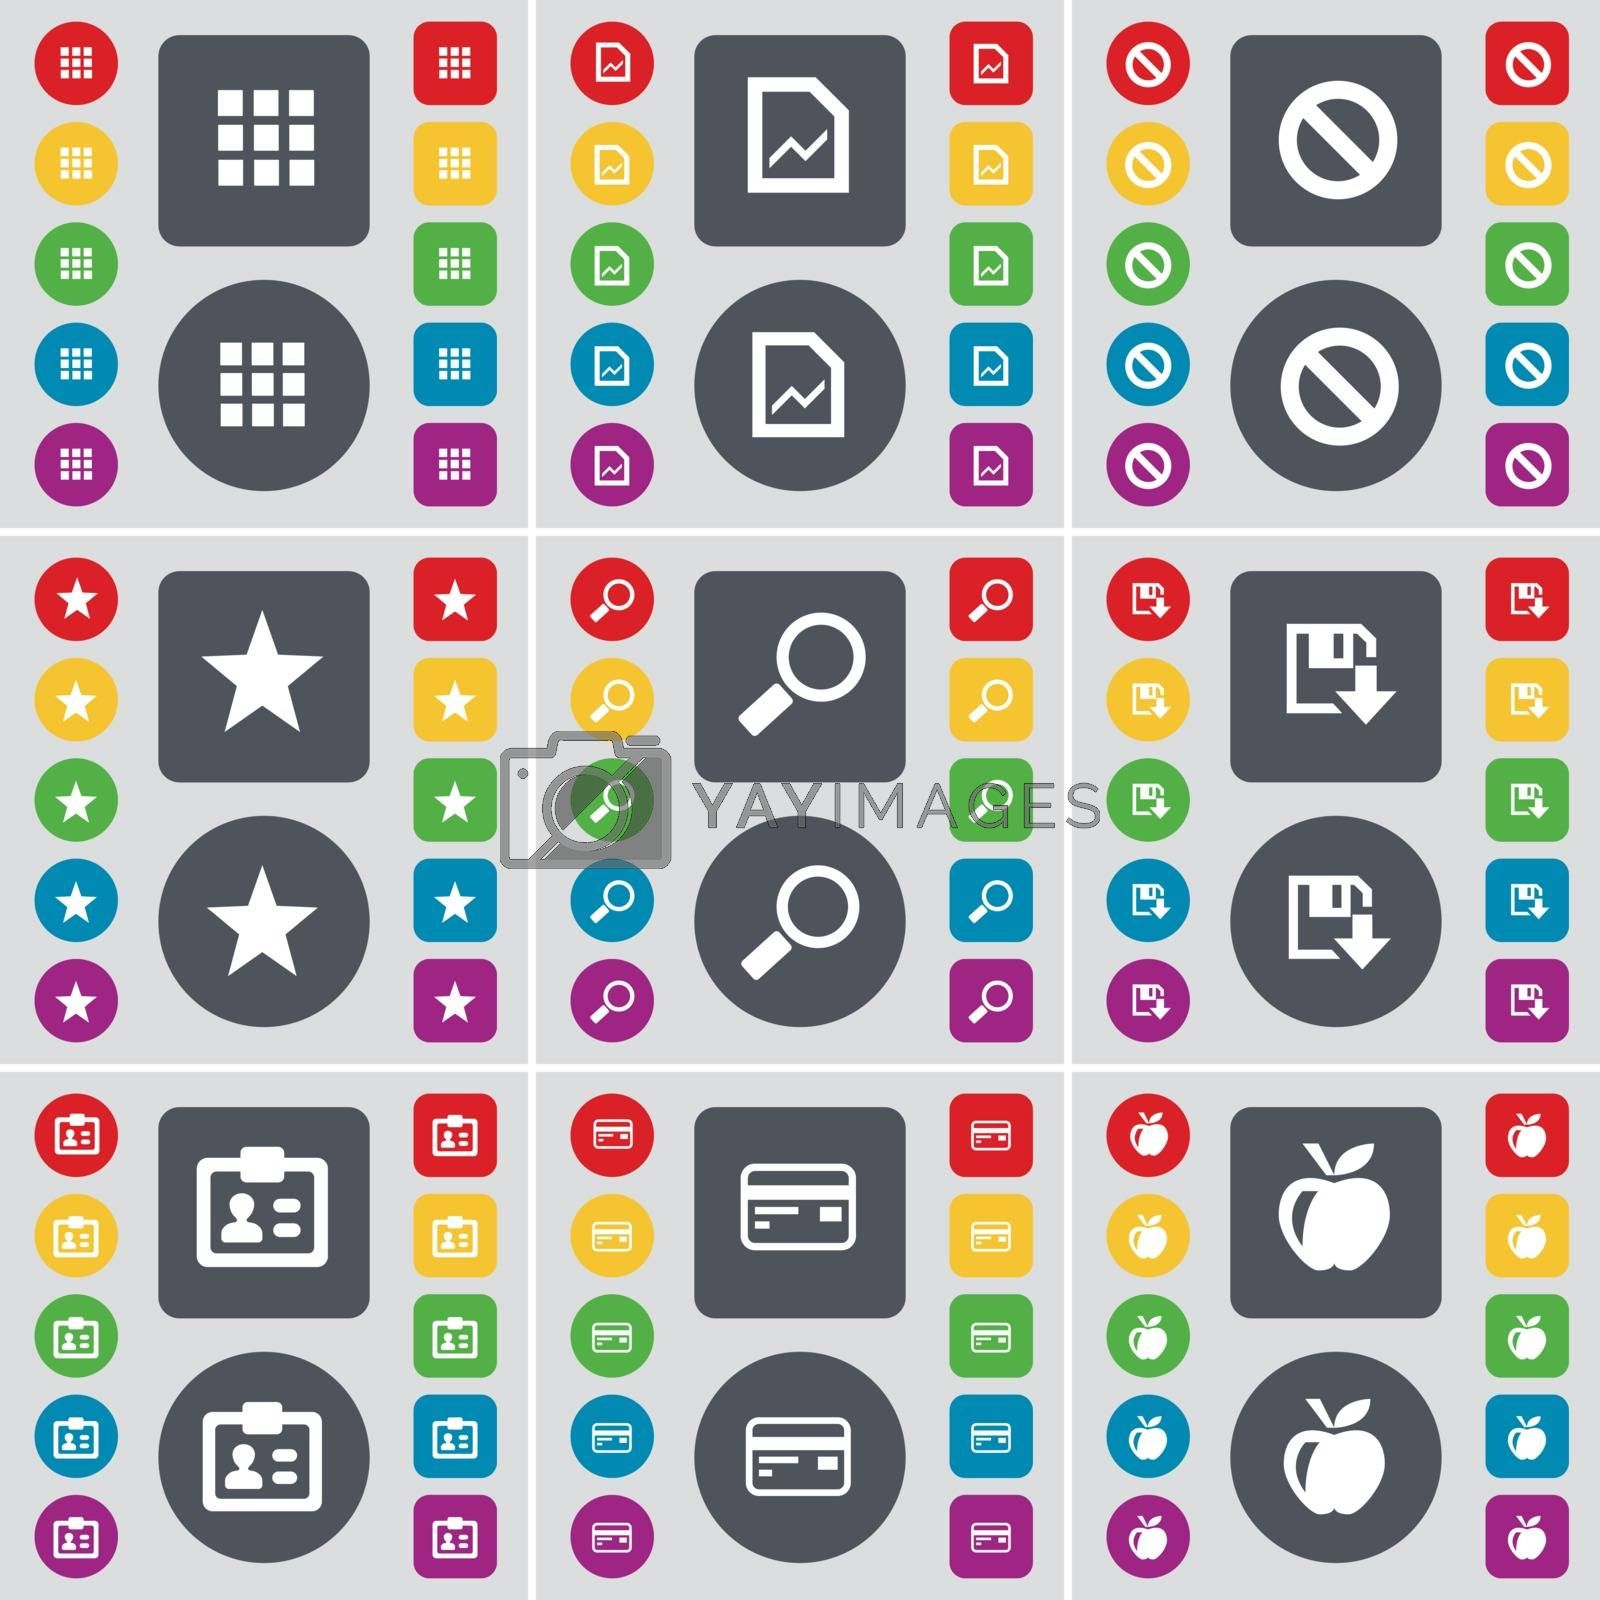 Royalty free image of Apps, Graph file, Stop, Star, Magnifying glass, Floppy, Contact, Credit card, Apple icon symbol. A large set of flat, colored buttons for your design. Vector by serhii_lohvyniuk